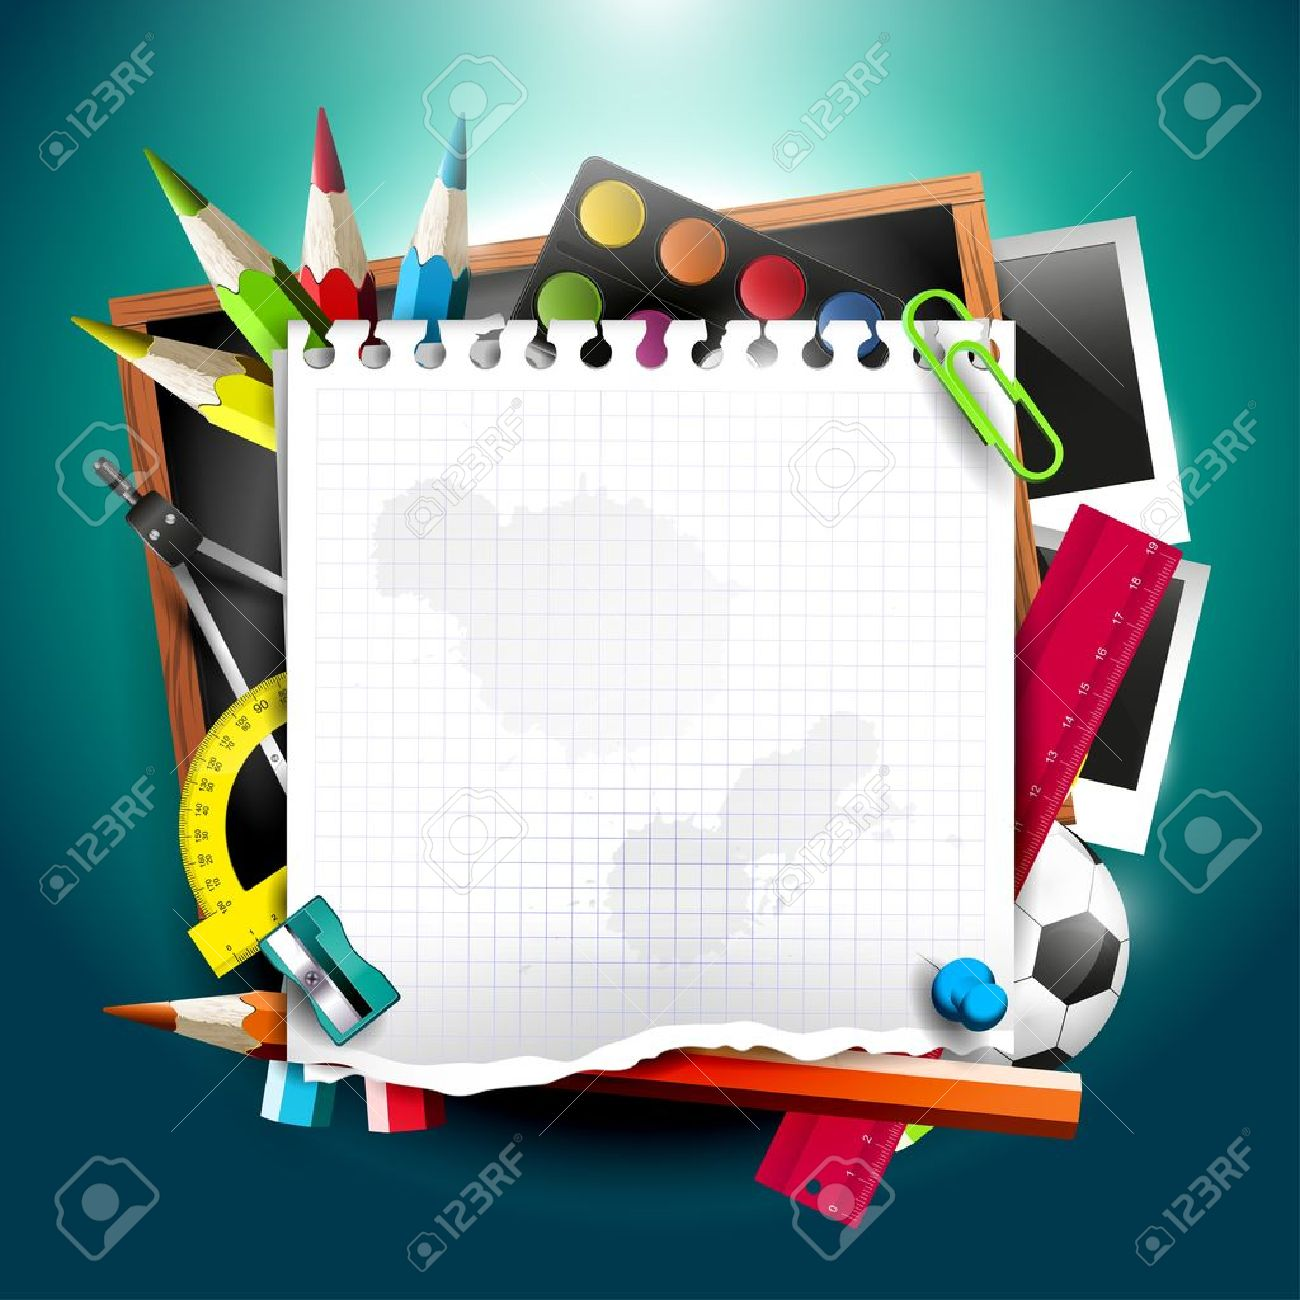 Modern school background with school supplies and empty paper Stock Vector - 20902782